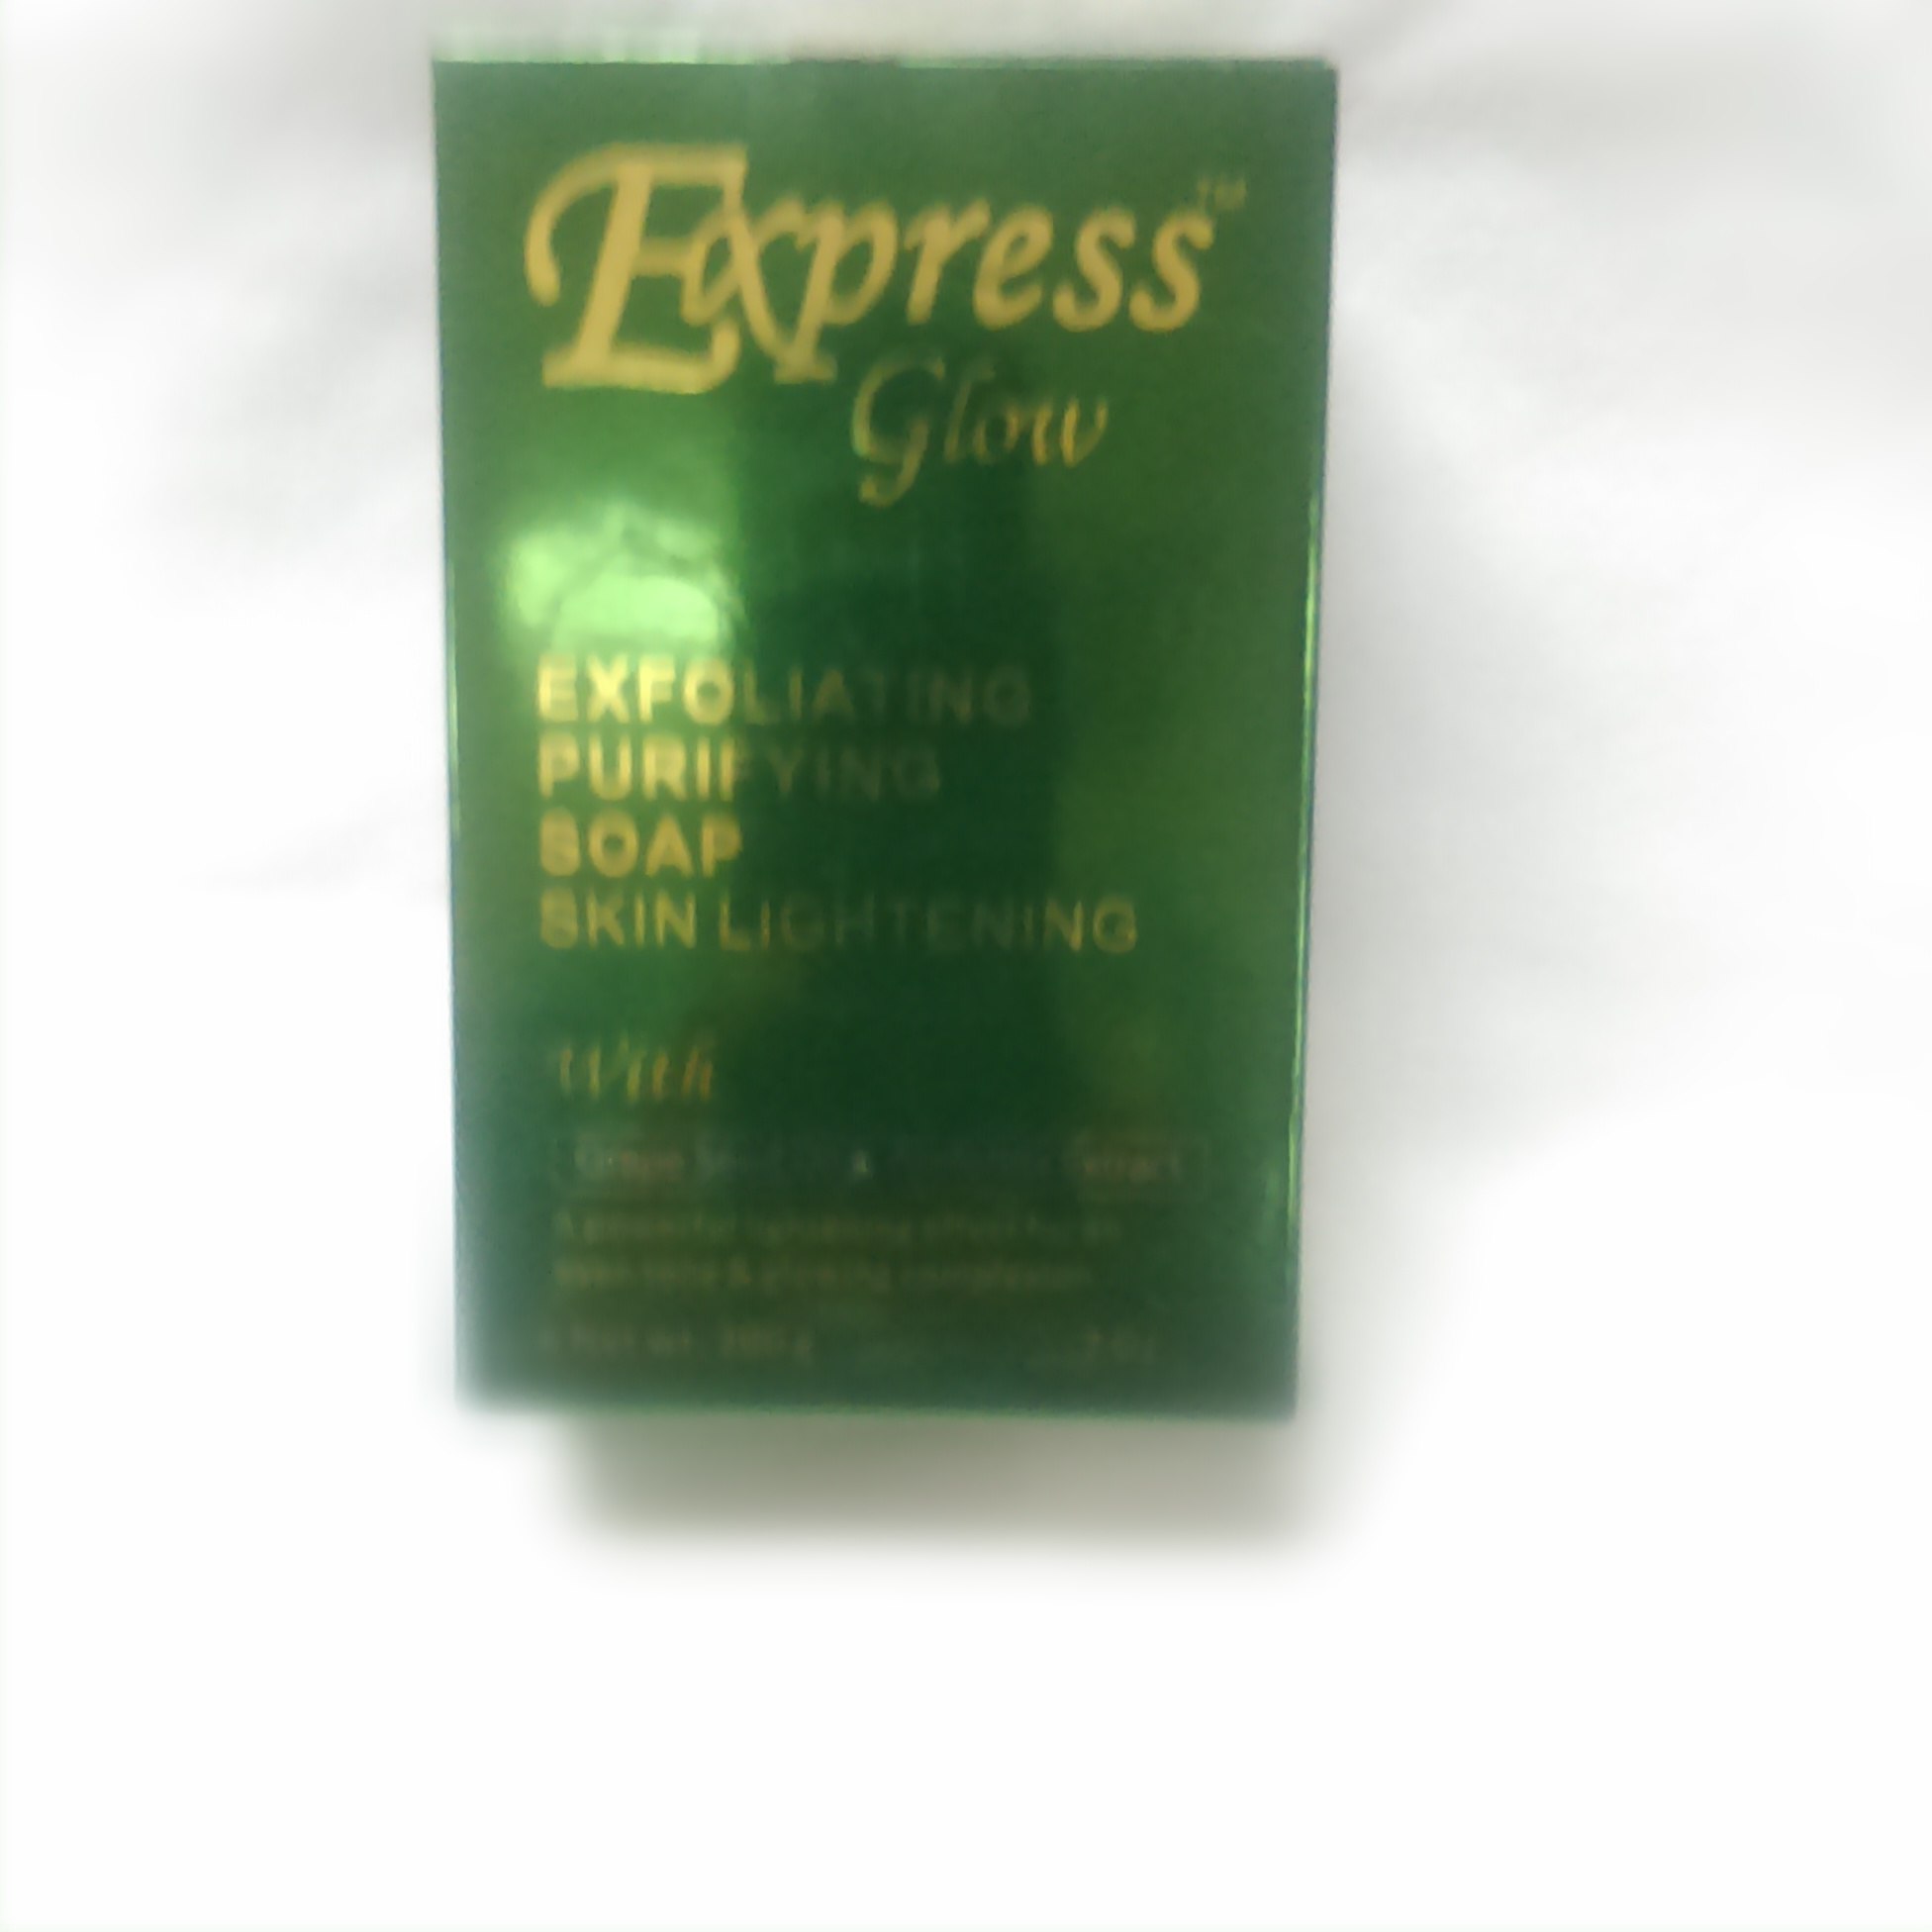 Express Glow SAVON EXFOLIANT PURIFANT